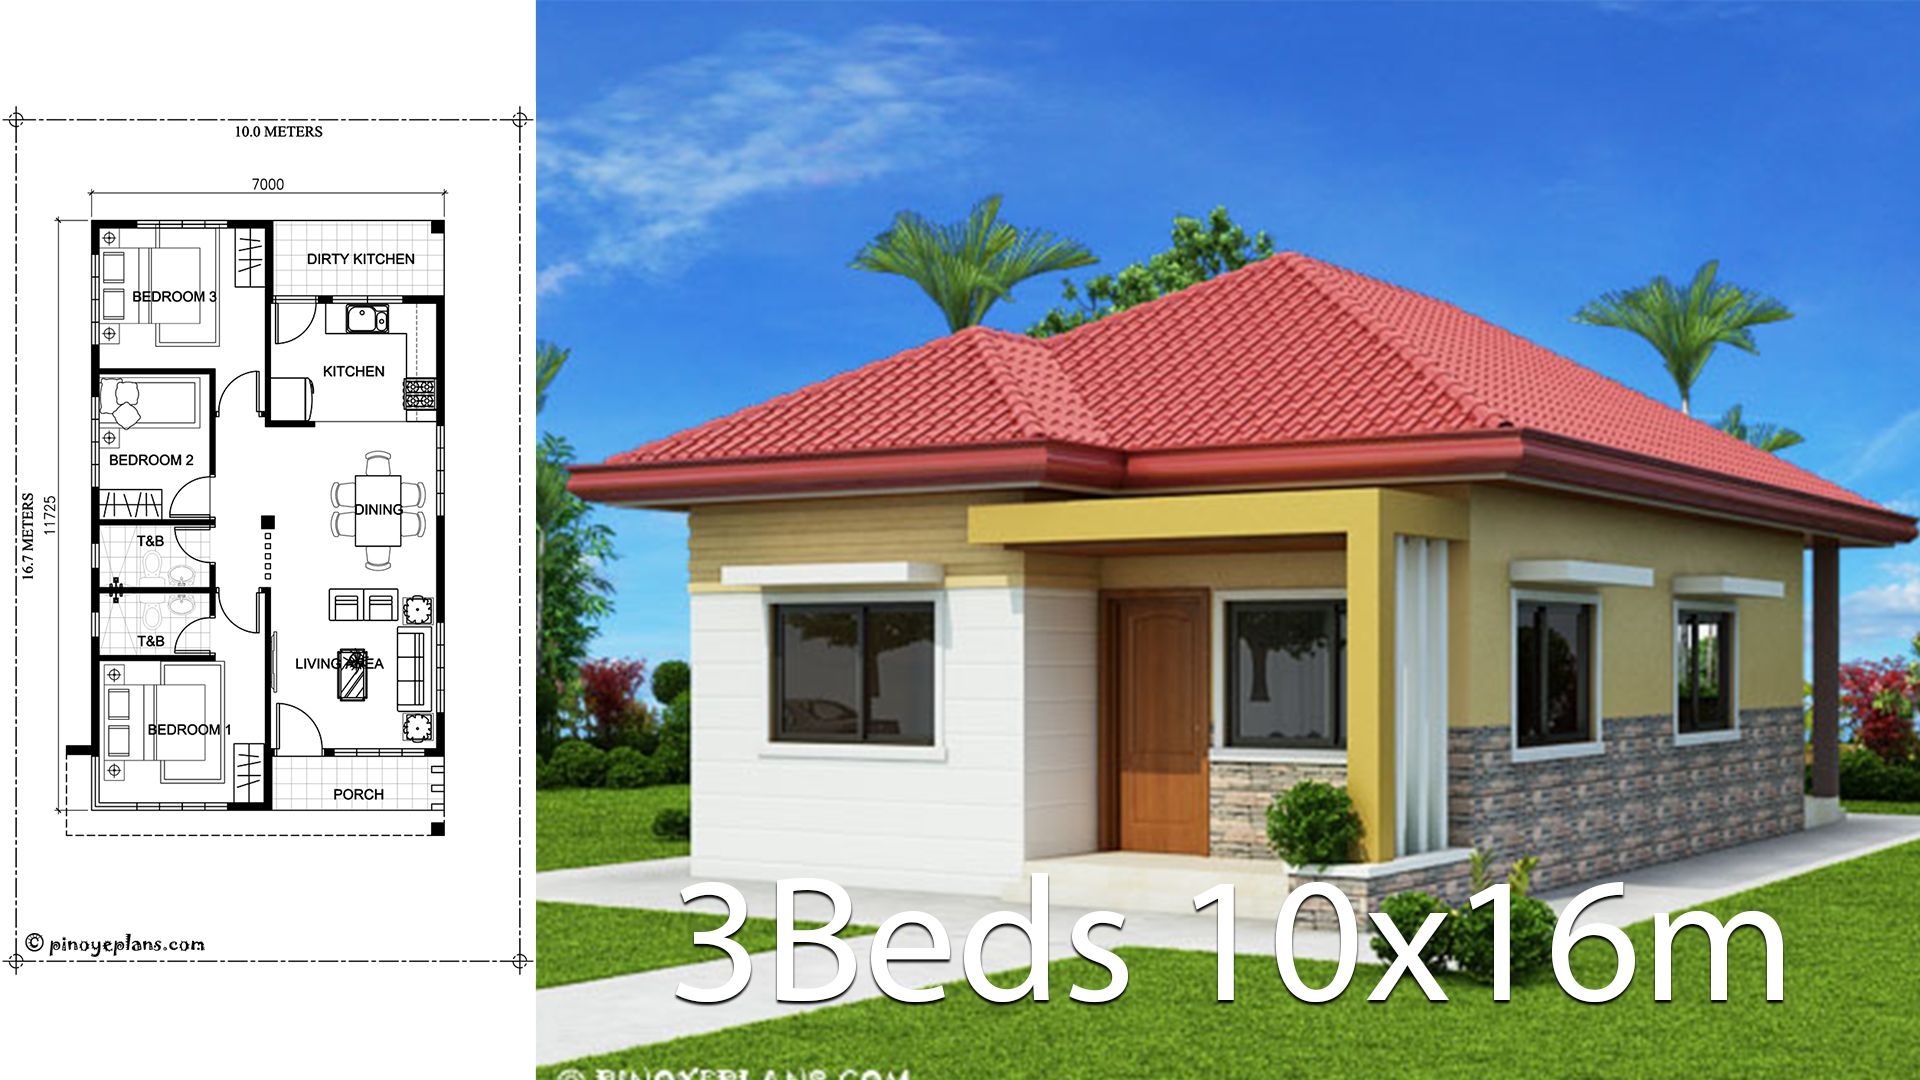 Home Design 10x16m With 3 Bedrooms House Description Number Of Floors 1 Storey Housebedroom 3 Roo Affordable House Plans Bungalow Style House Plans House Plans